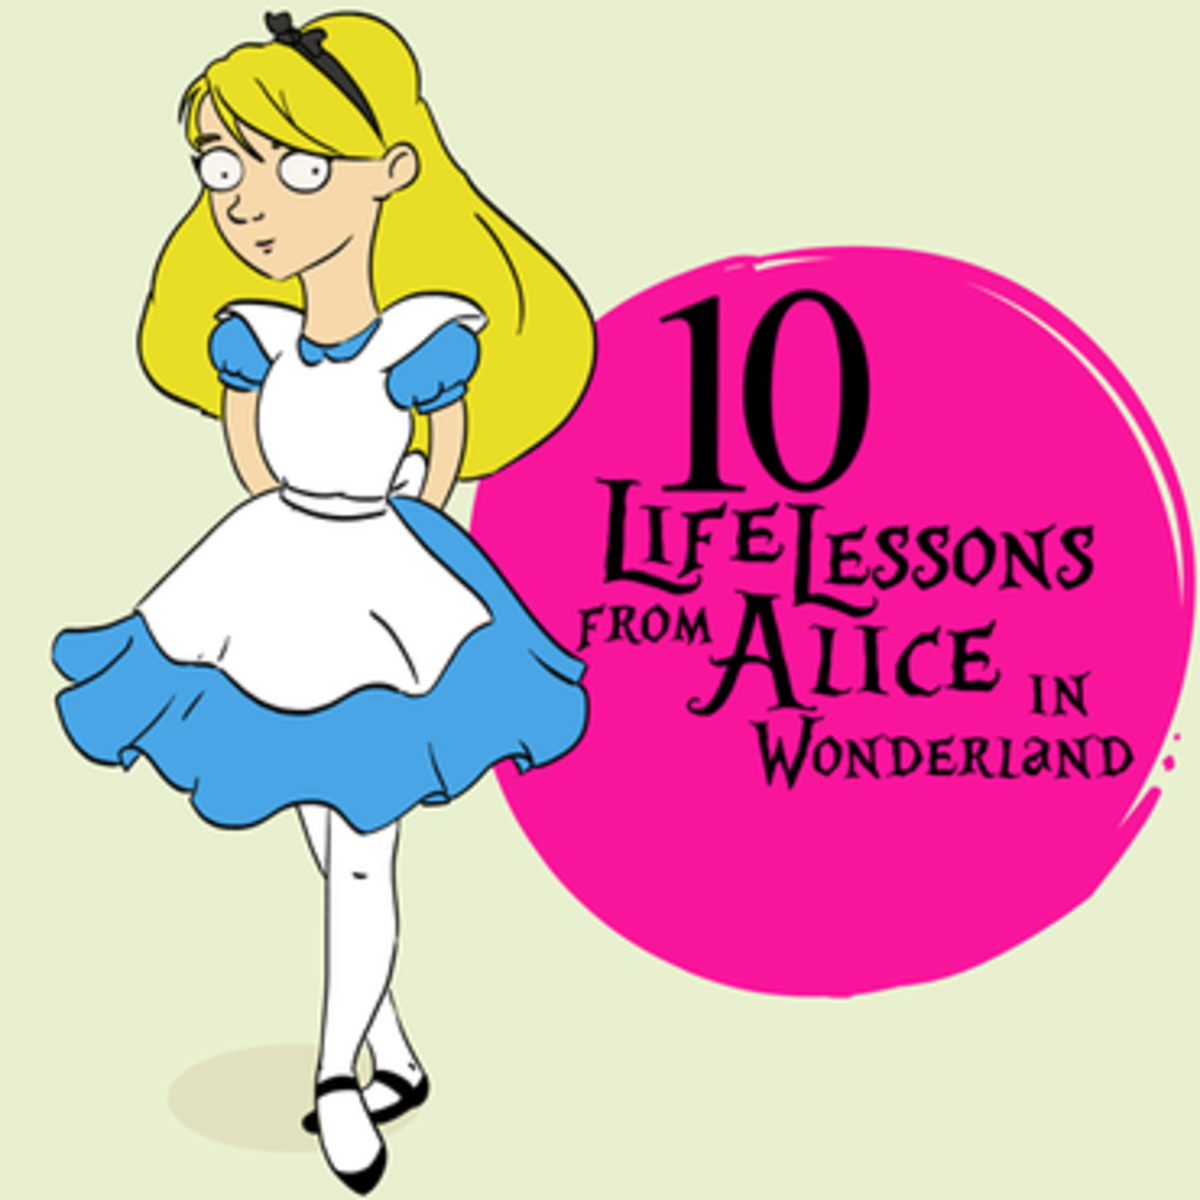 10-life-lessons-from-alice-in-wonderland